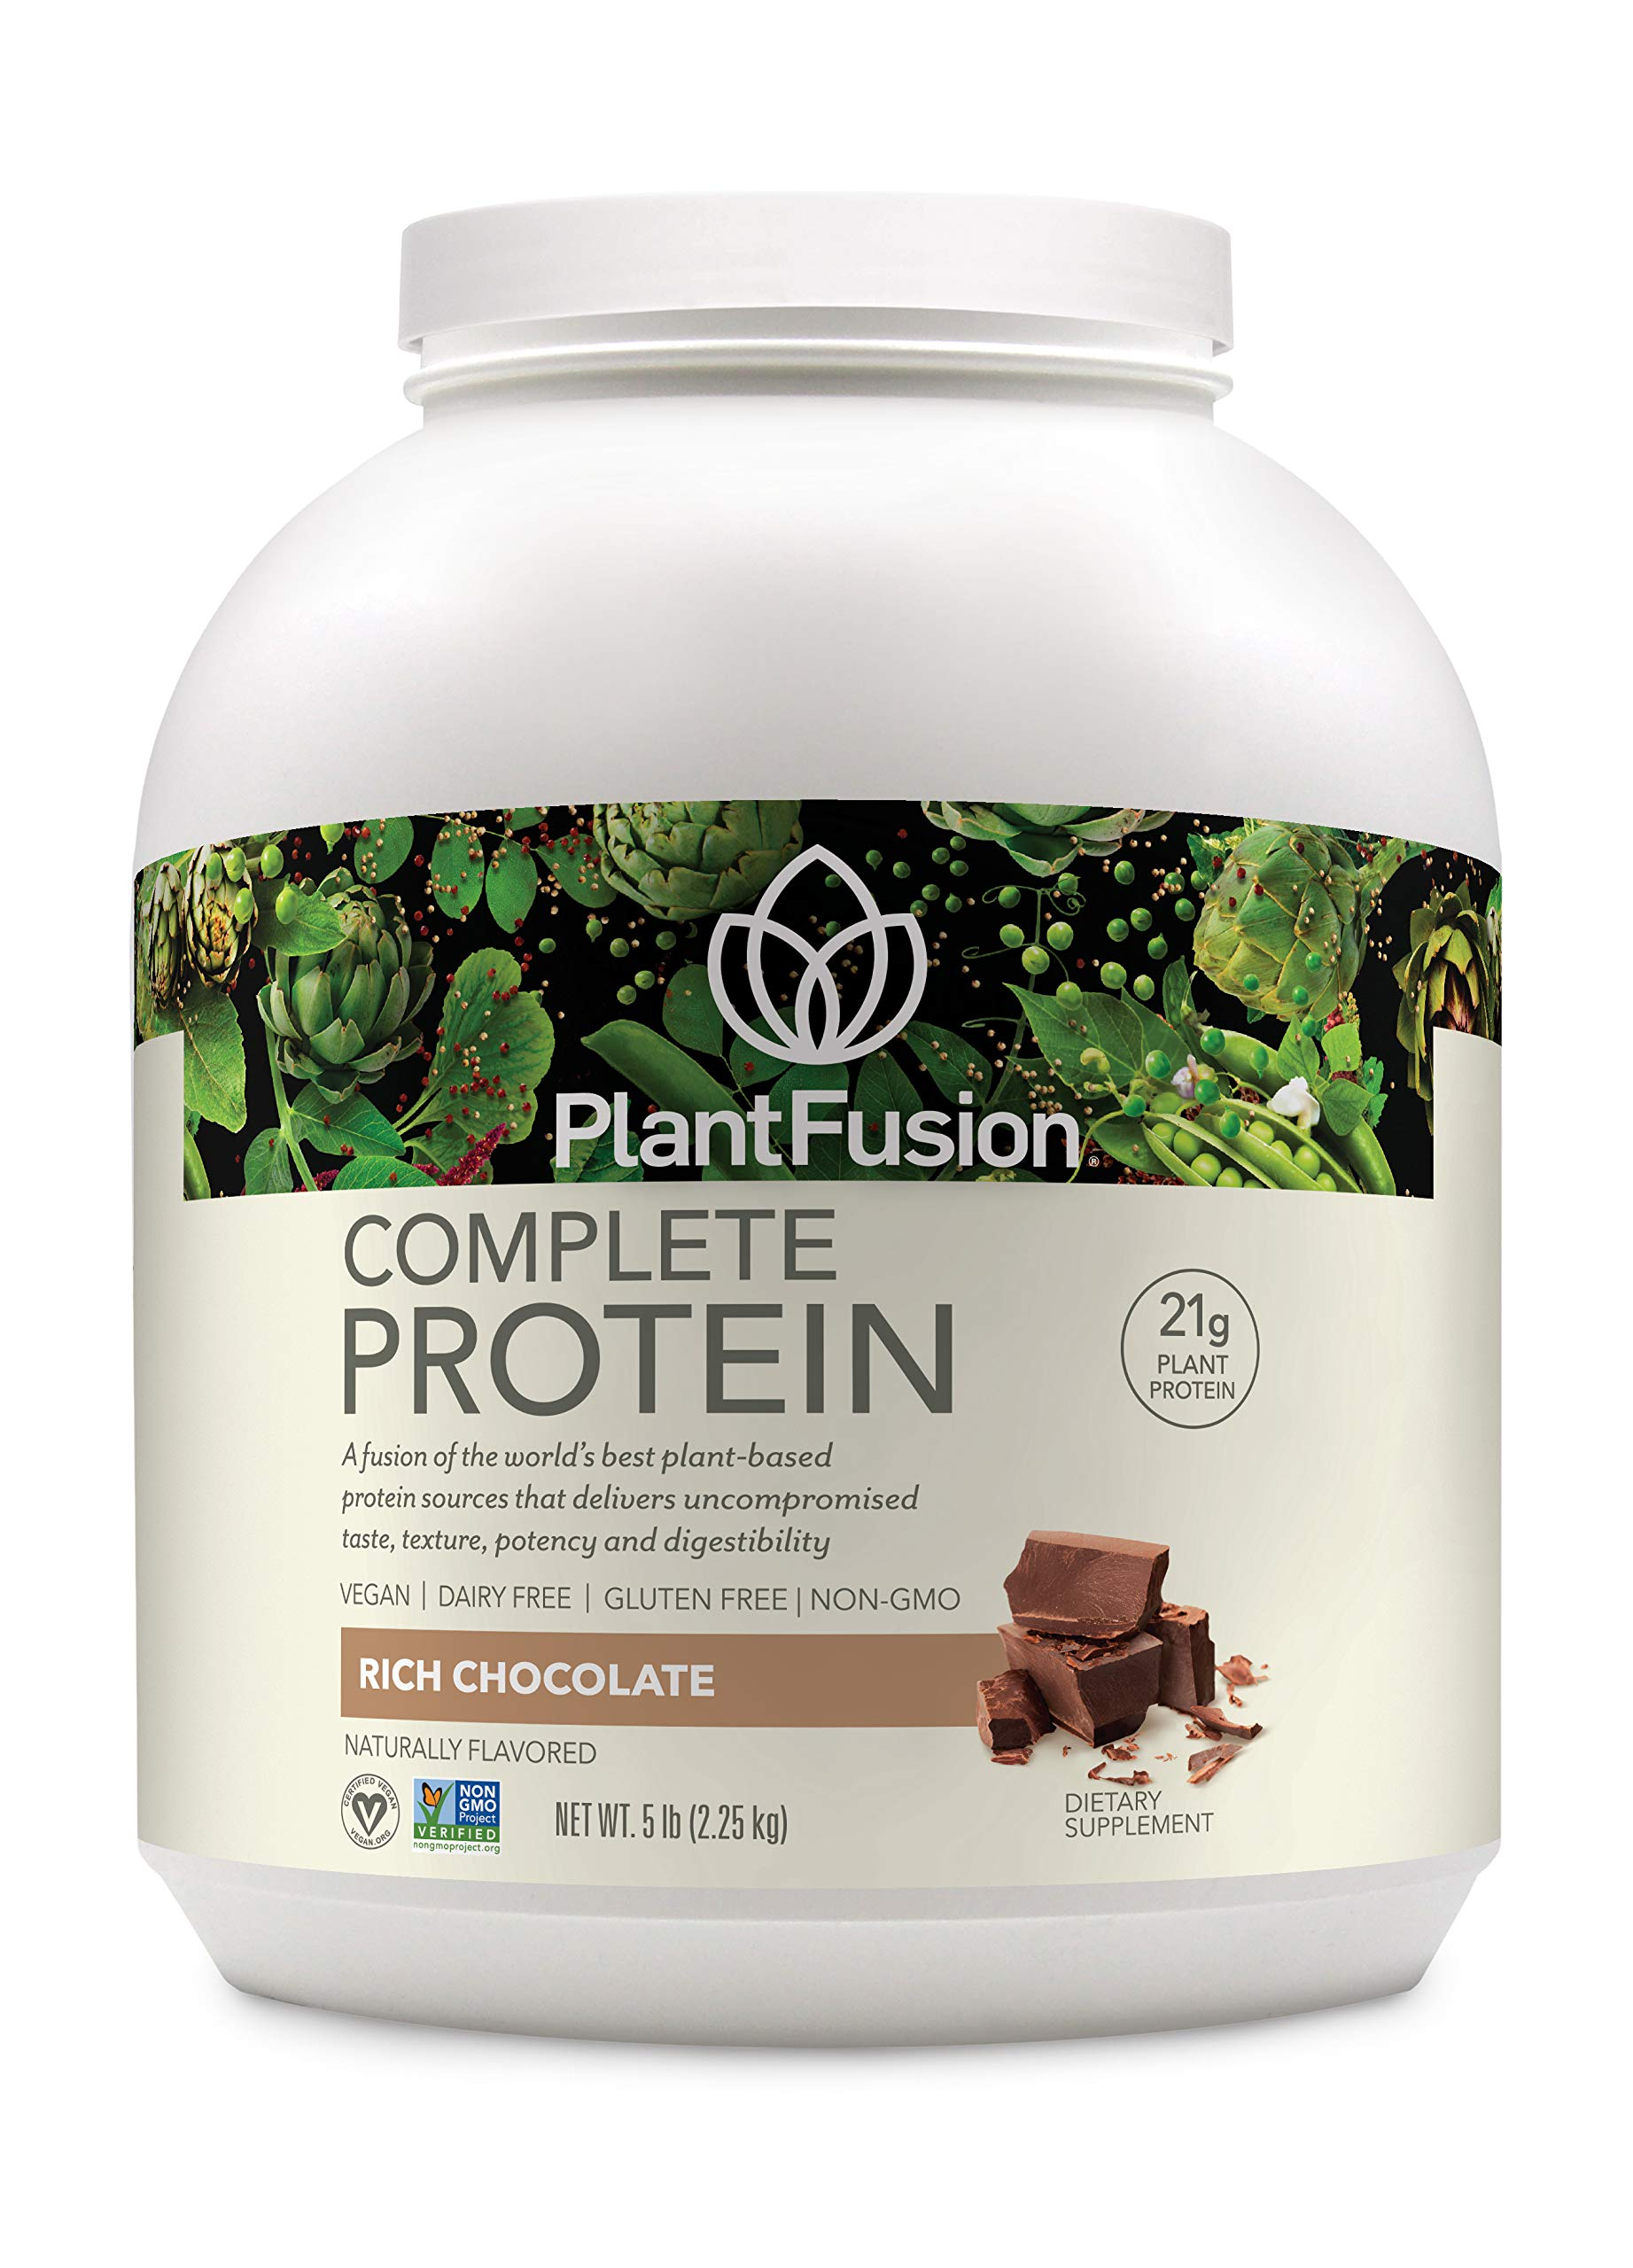 PlantFusion Complete Plant-Based Protein Powder, Gluten Free, Vegan, Non-GMO, Packing May Vary, Chocolate, 5 Pound